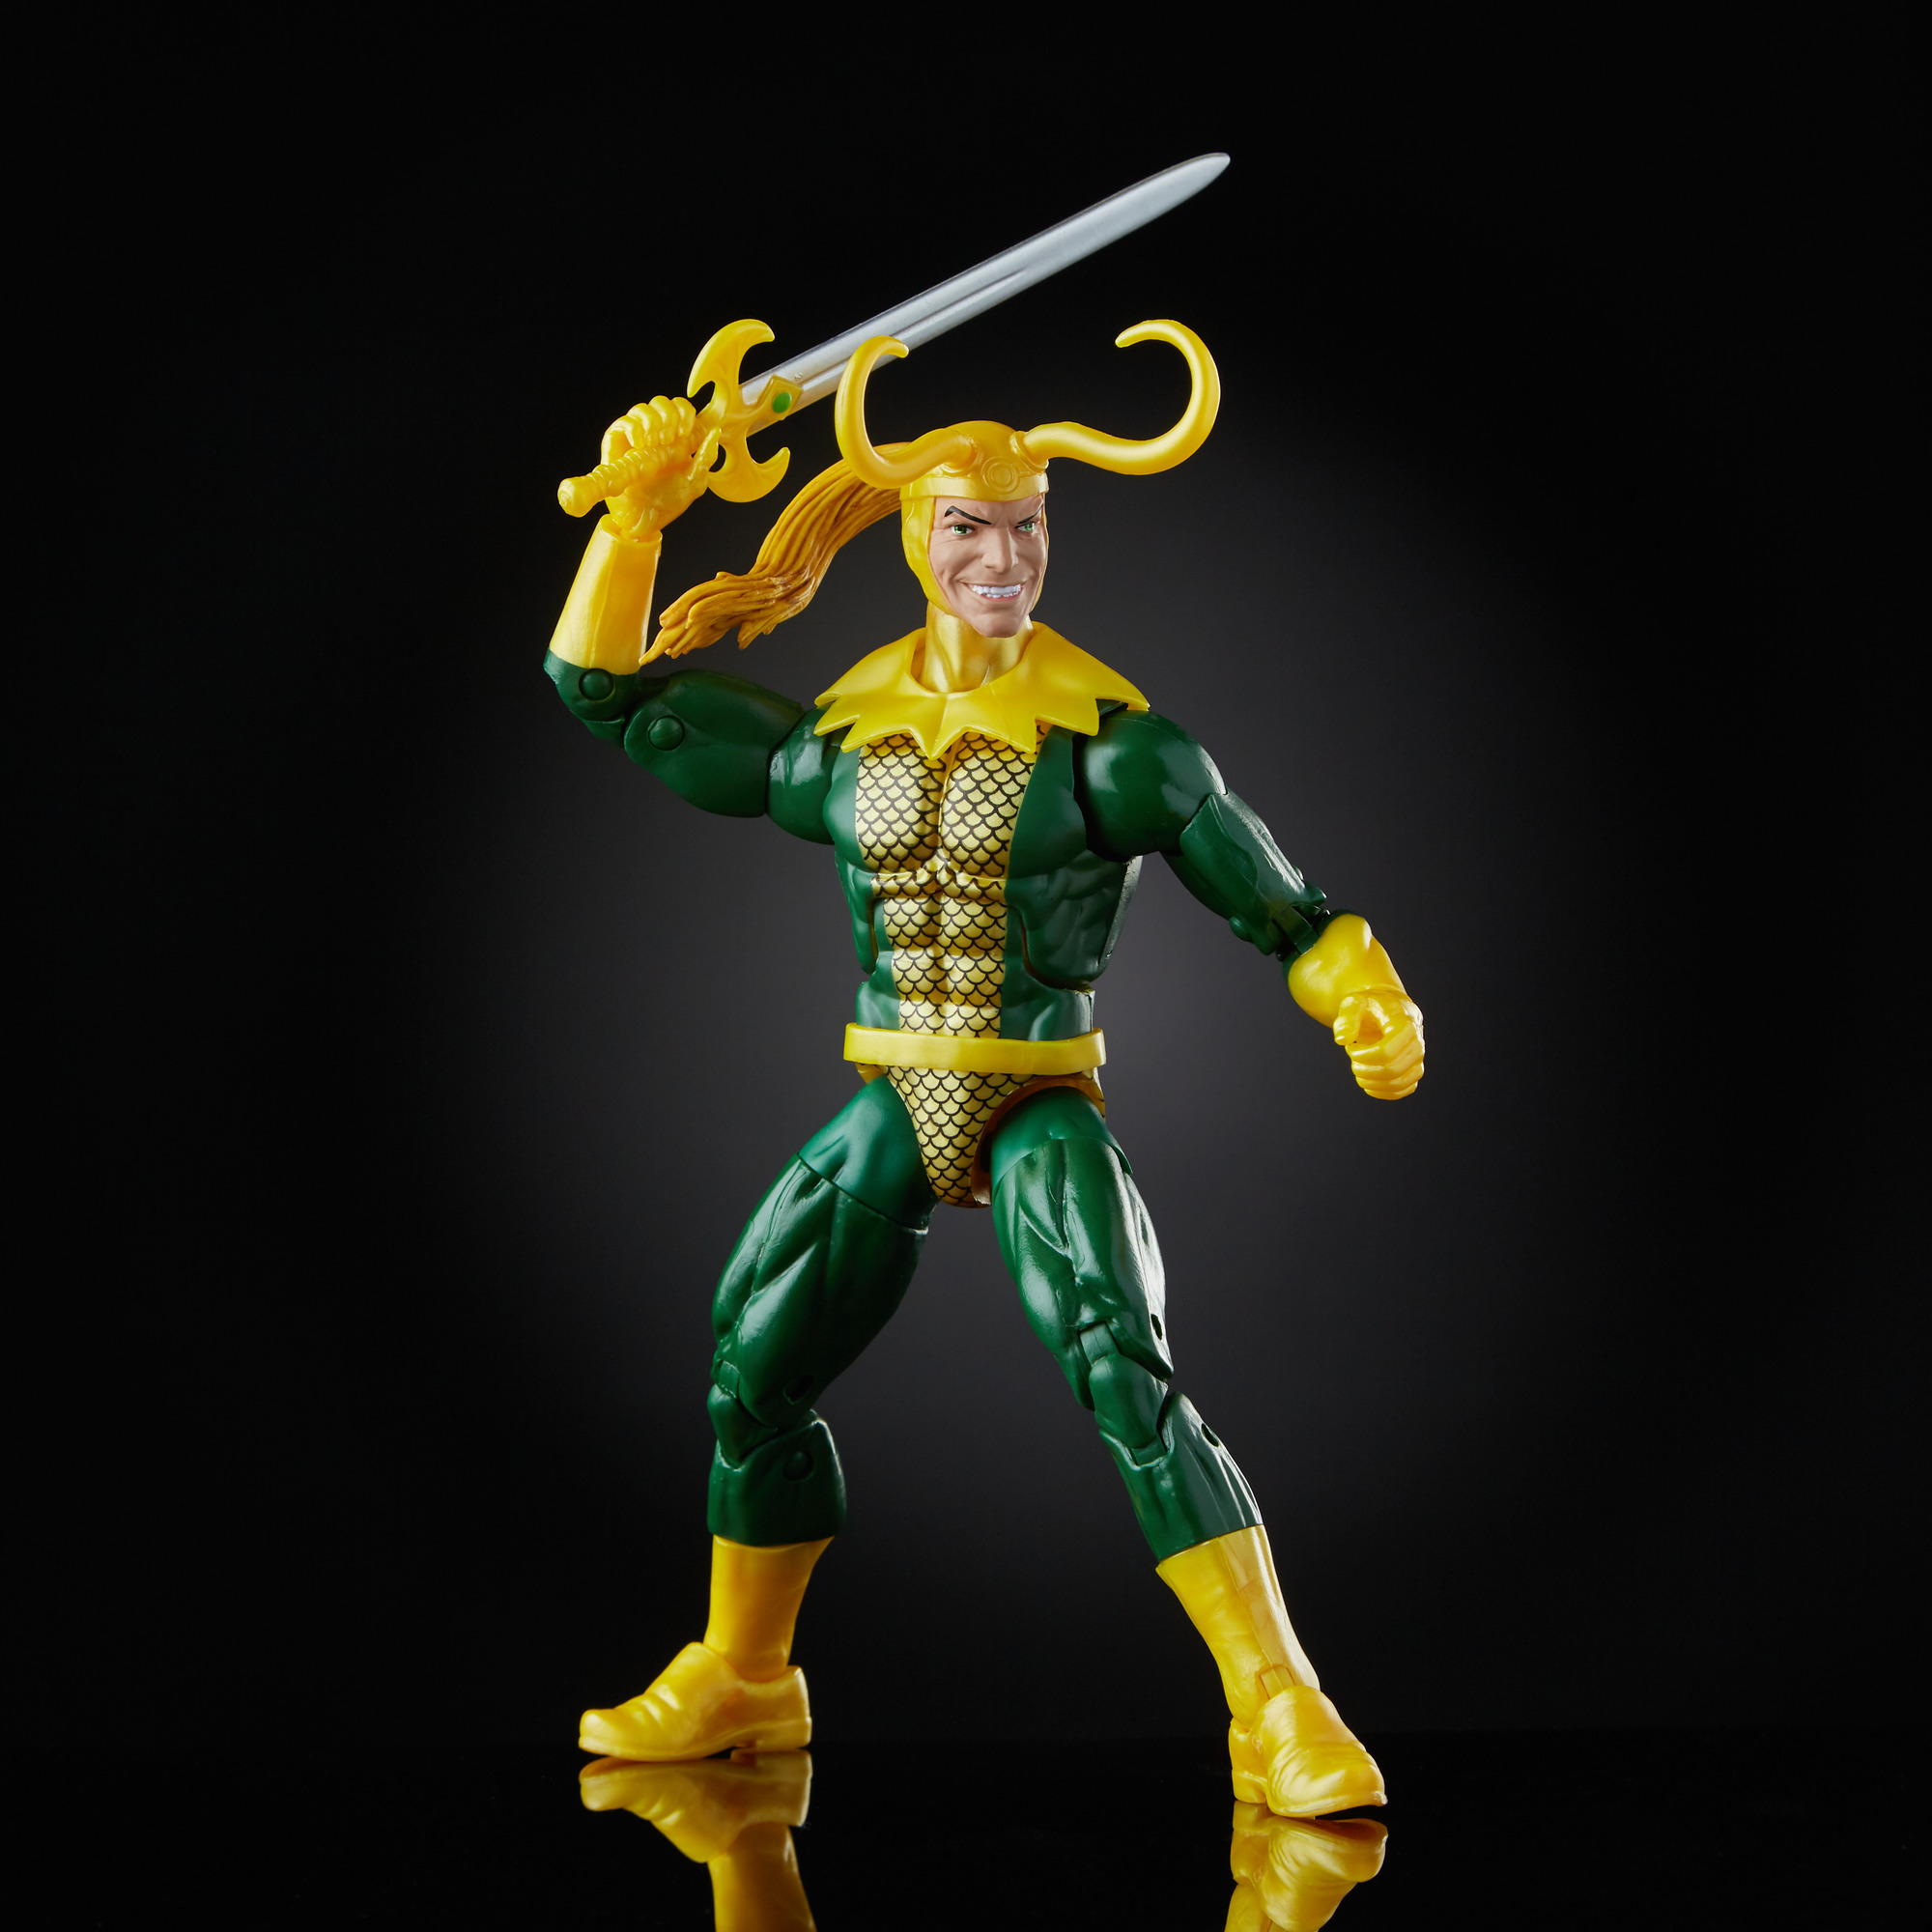 Details about Marvel Legends Series Loki 6-inch Collectible Action Figure